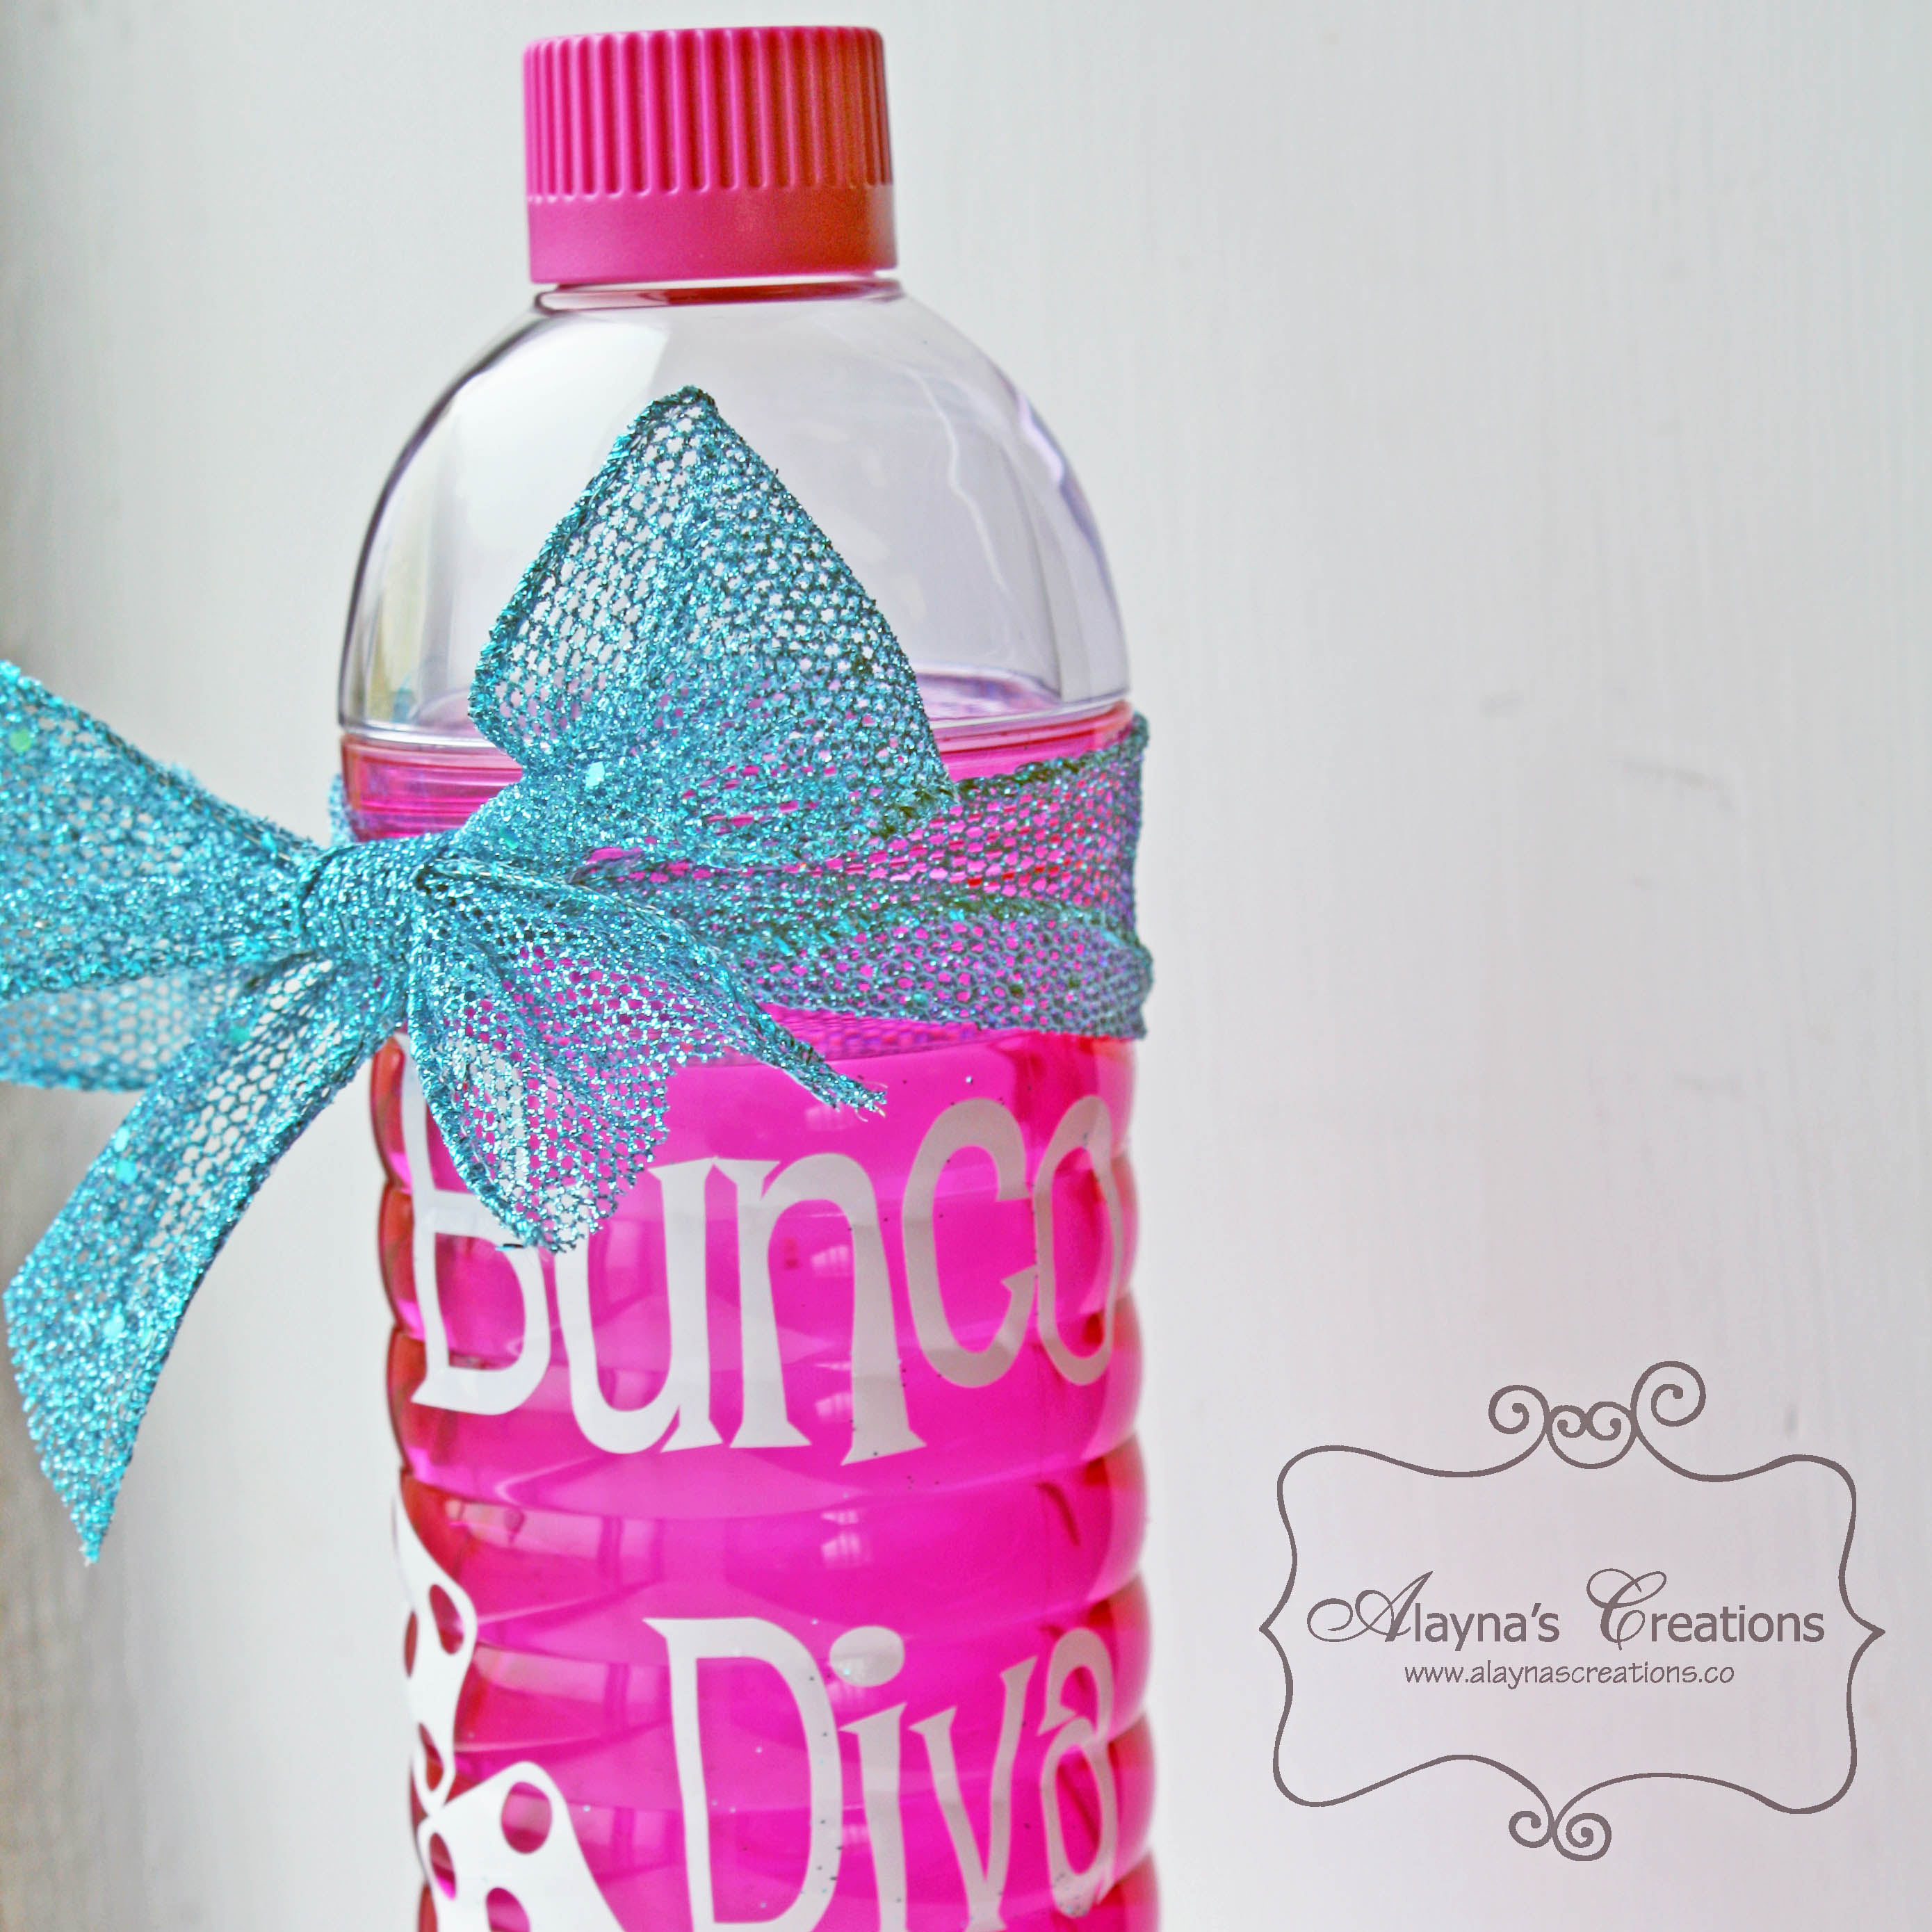 Bunco Archives - DIY home decor and crafts